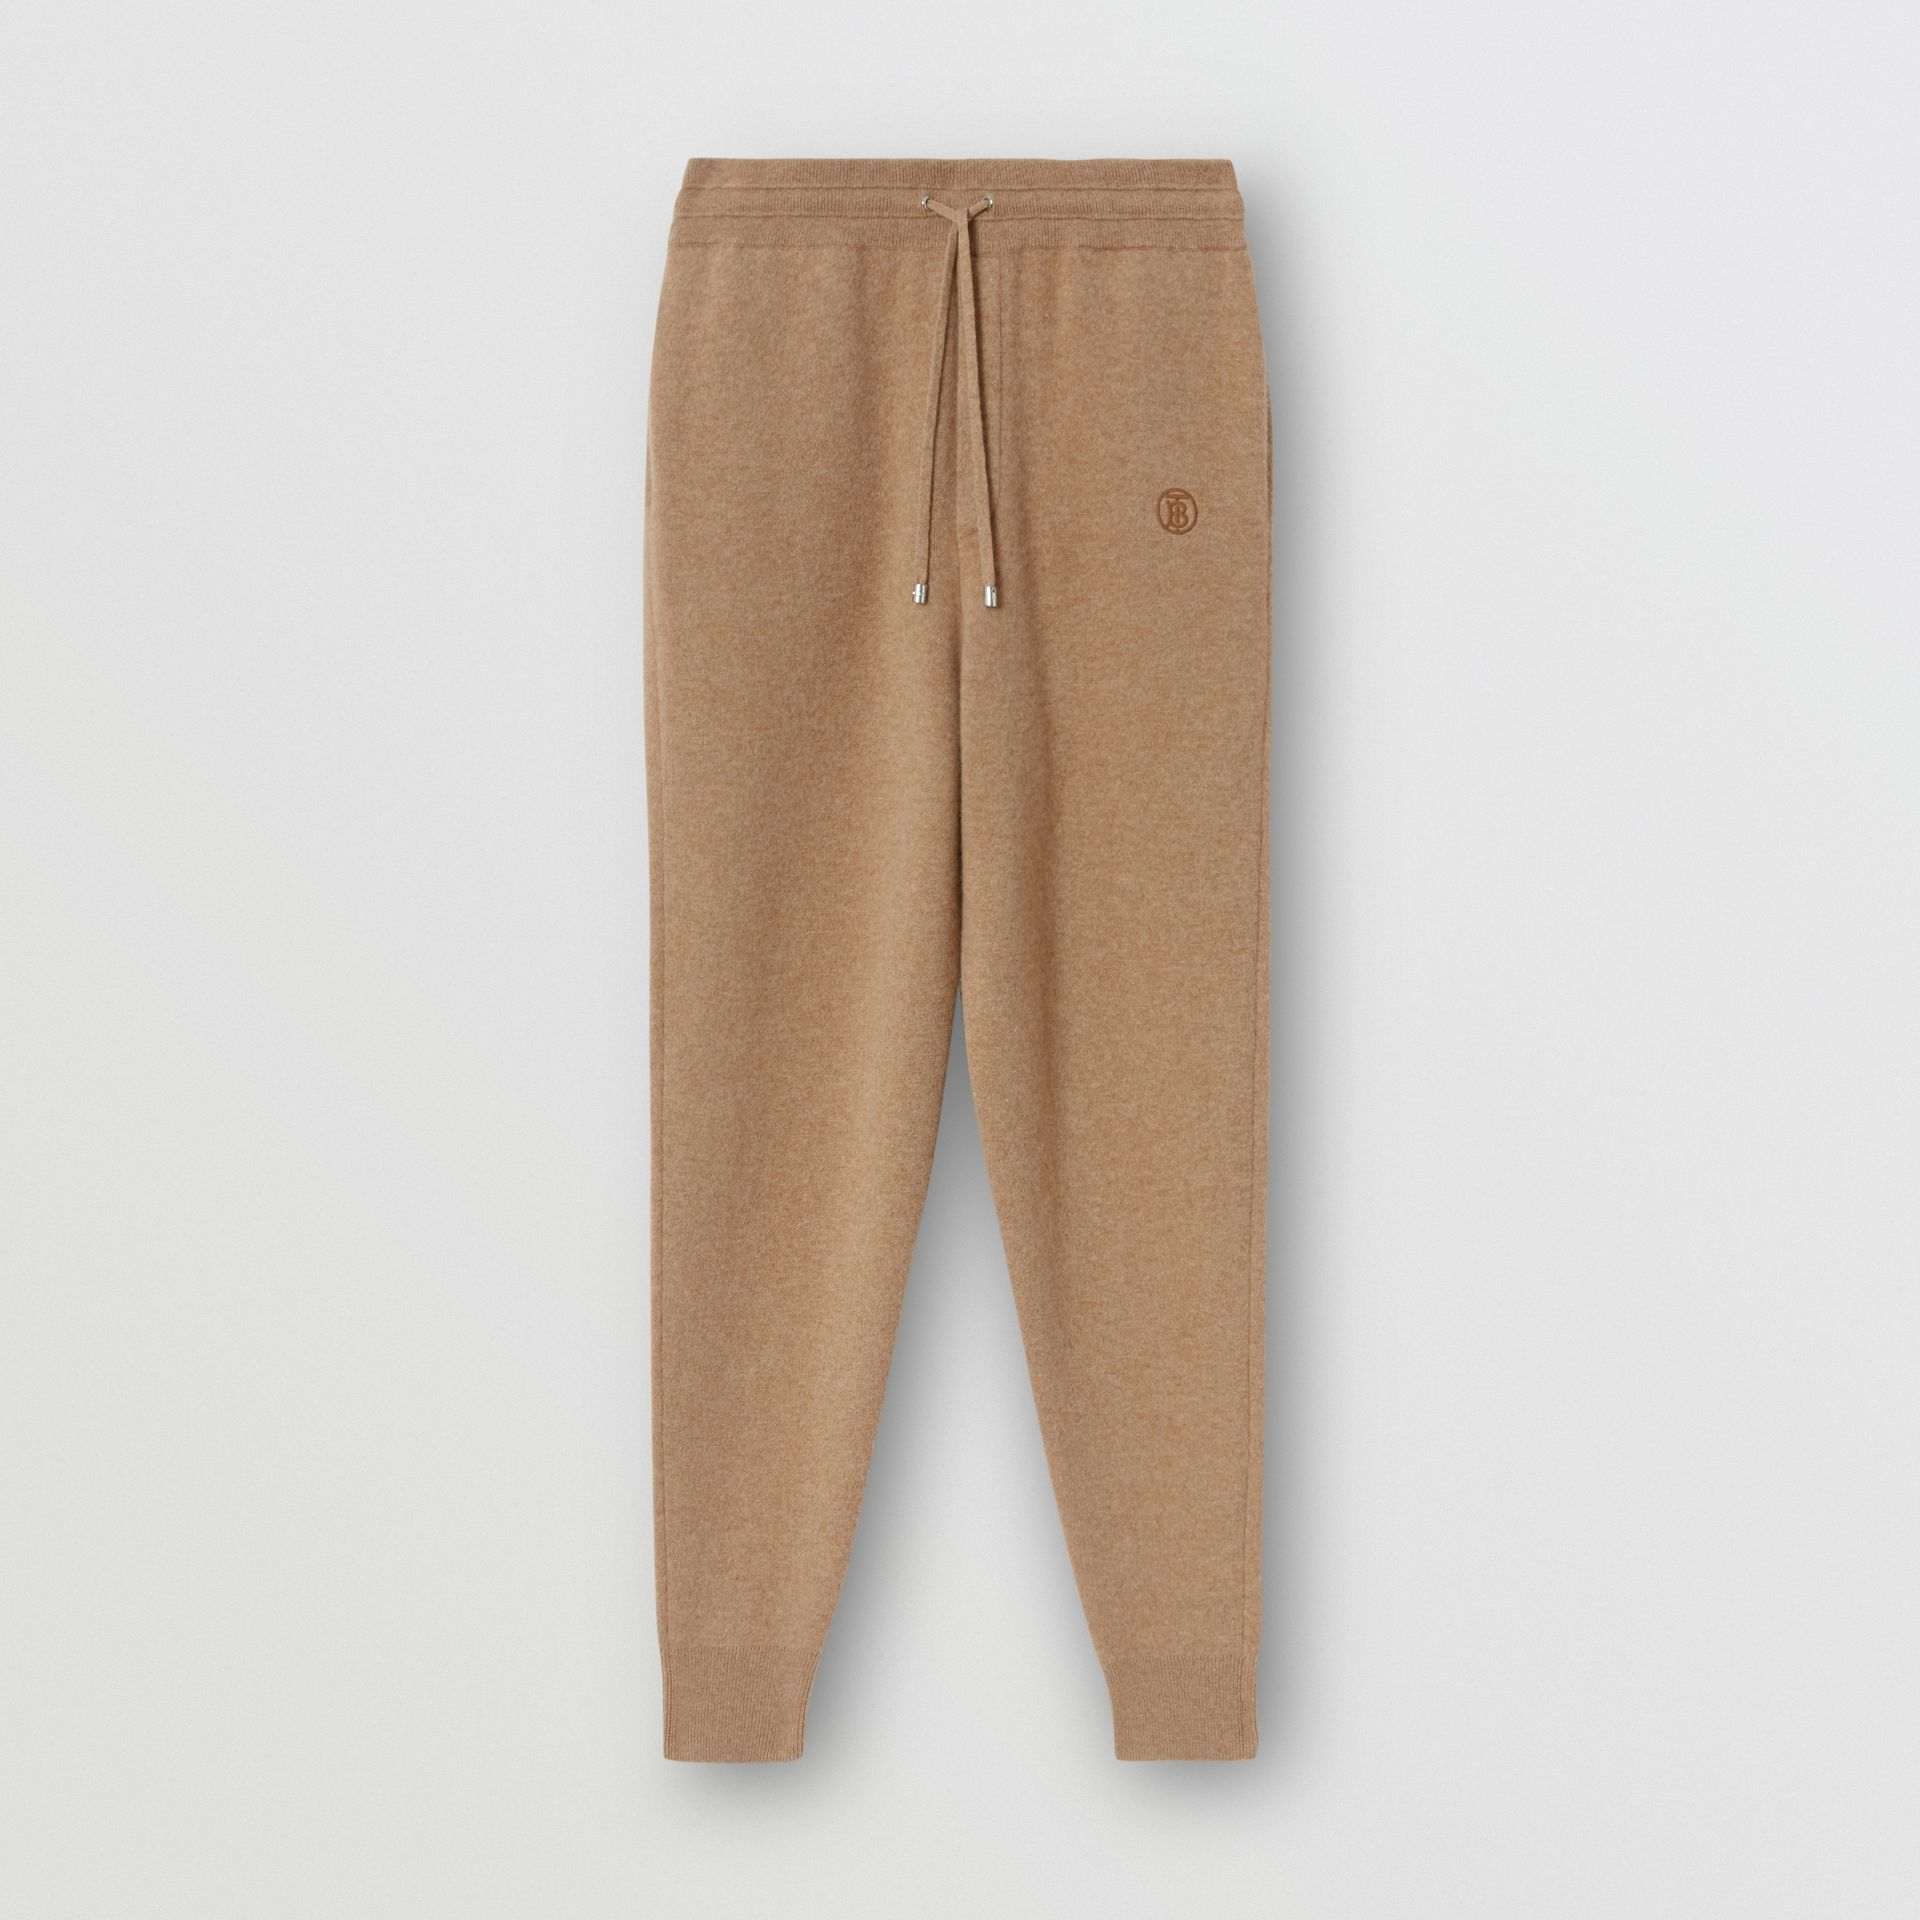 Monogram Motif Cashmere Blend Trackpants in Pale Coffee - Men | Burberry - gallery image 1